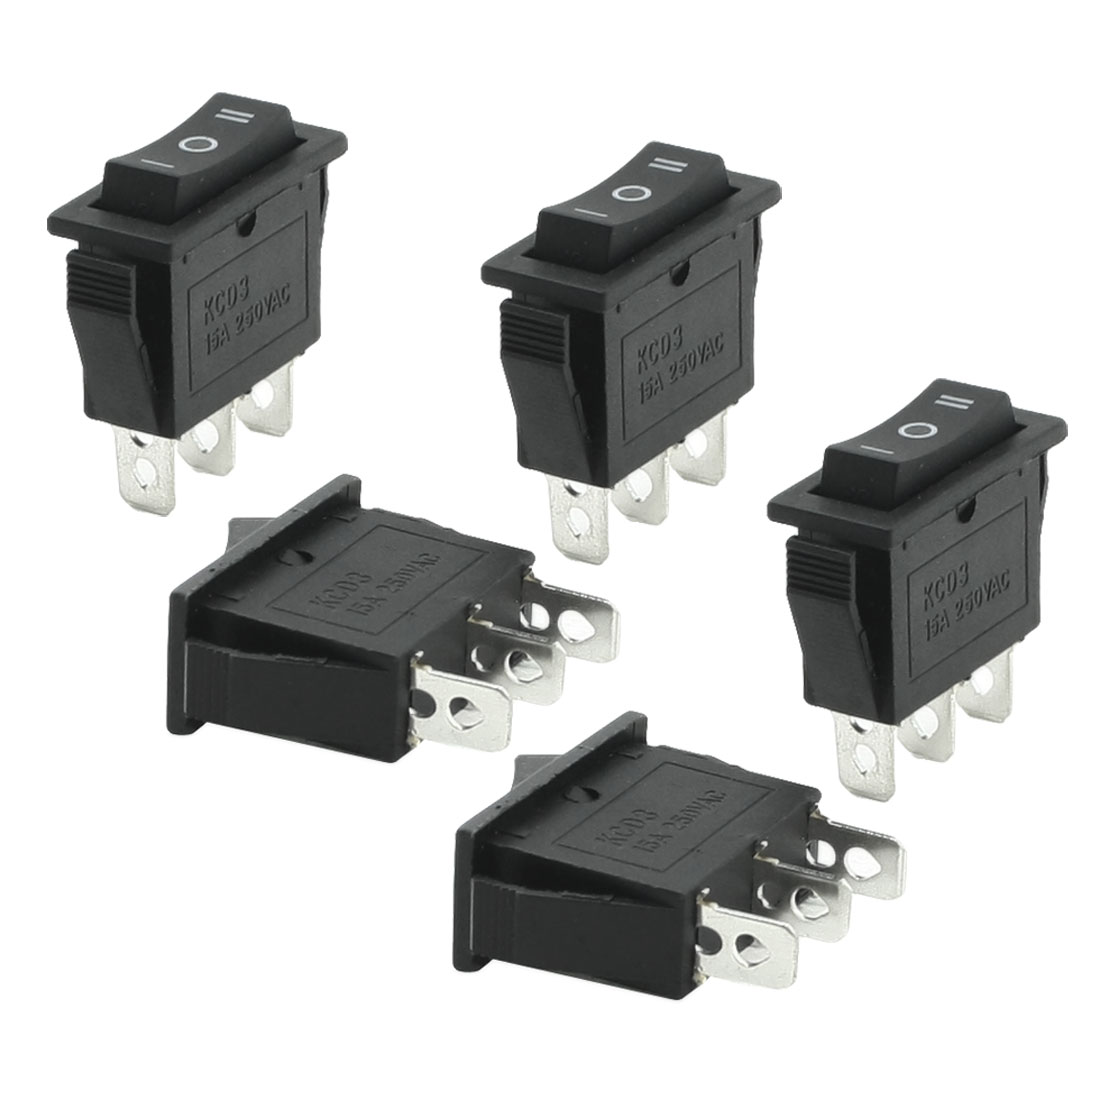 5 Pcs 3 Pins SPDT Black On/Off/On Rocker Switch AC 250V 15A